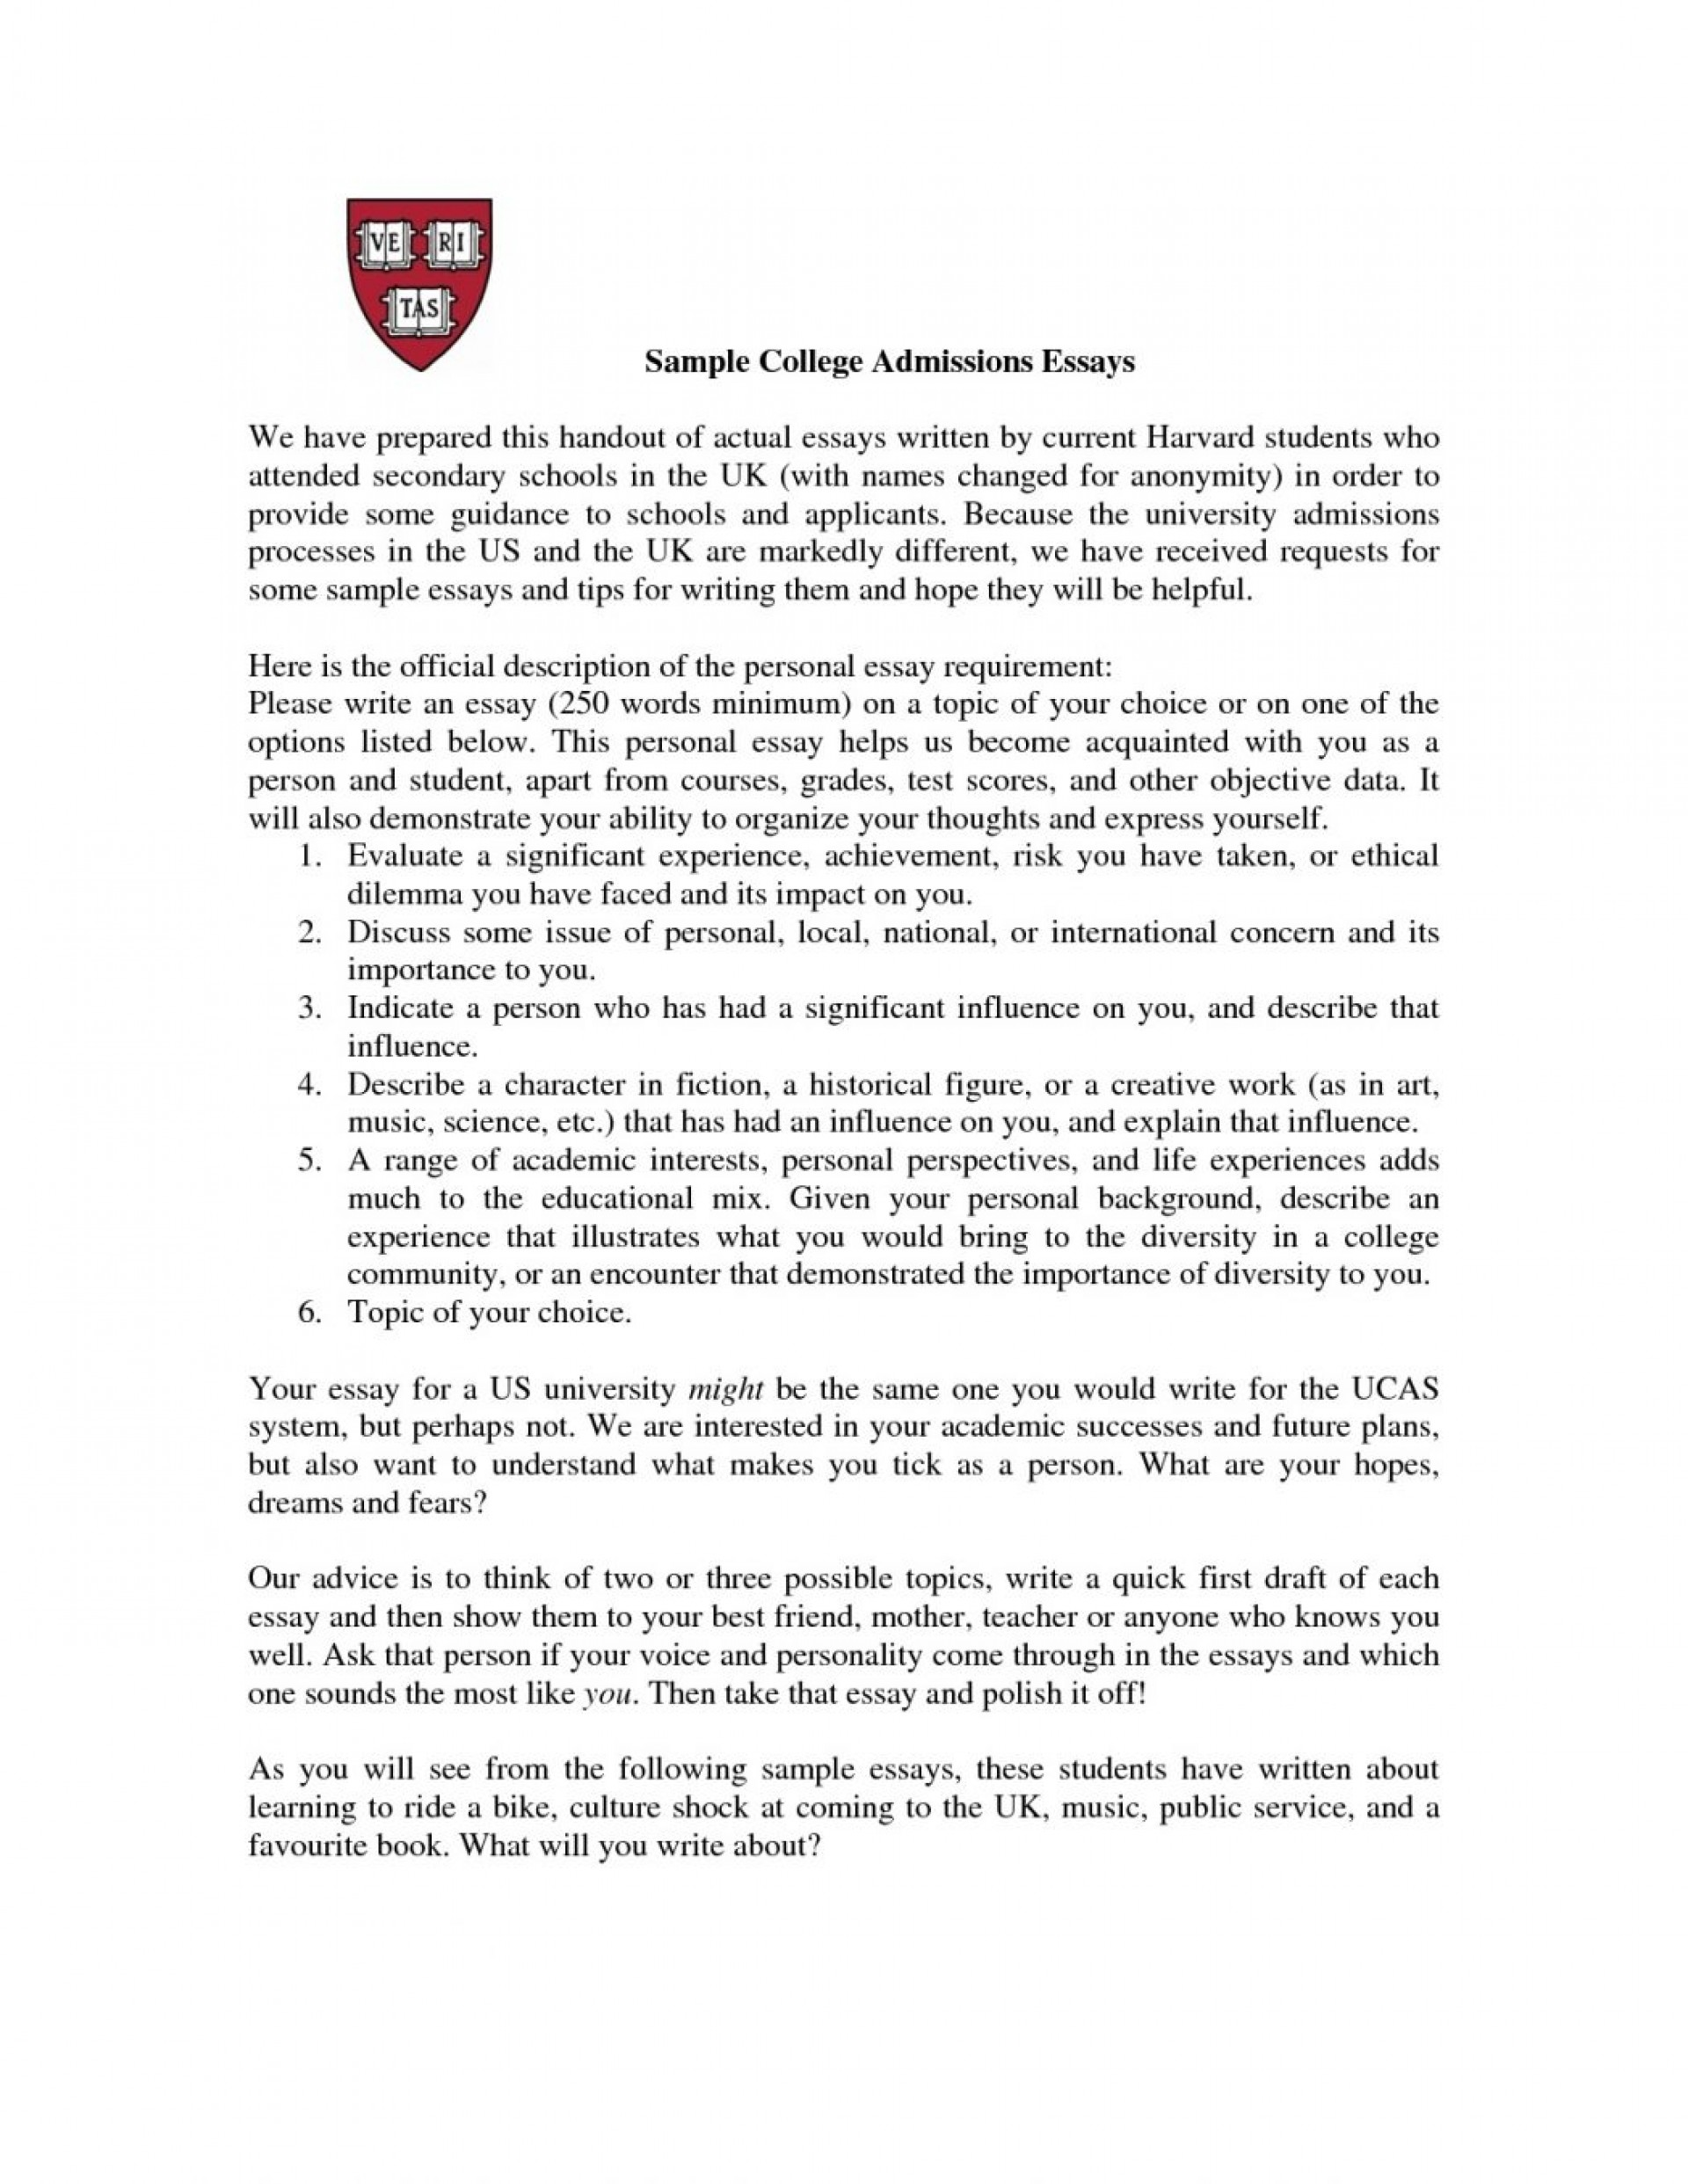 013 College Entrance Essay Examples Example Application Writings And Essays Words Transfer Common Topic With Re Harvard Nursing About Yourself Stanford Unusual 500 Pdf 1920